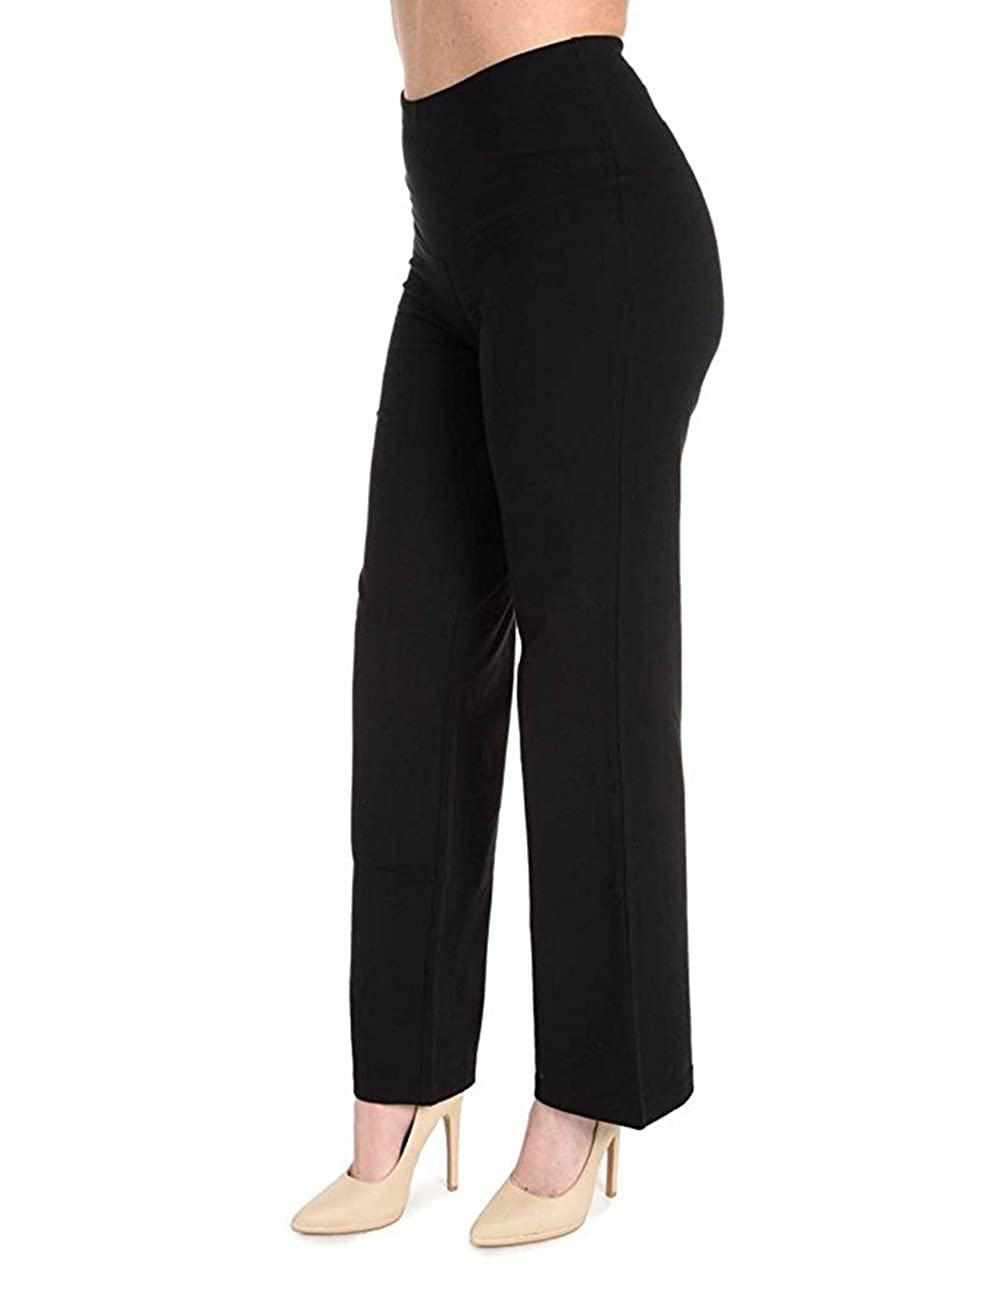 0bf669aa7d8f SPANX Ath-Leisure Active Full Leg Pants at Amazon Women's Clothing store: